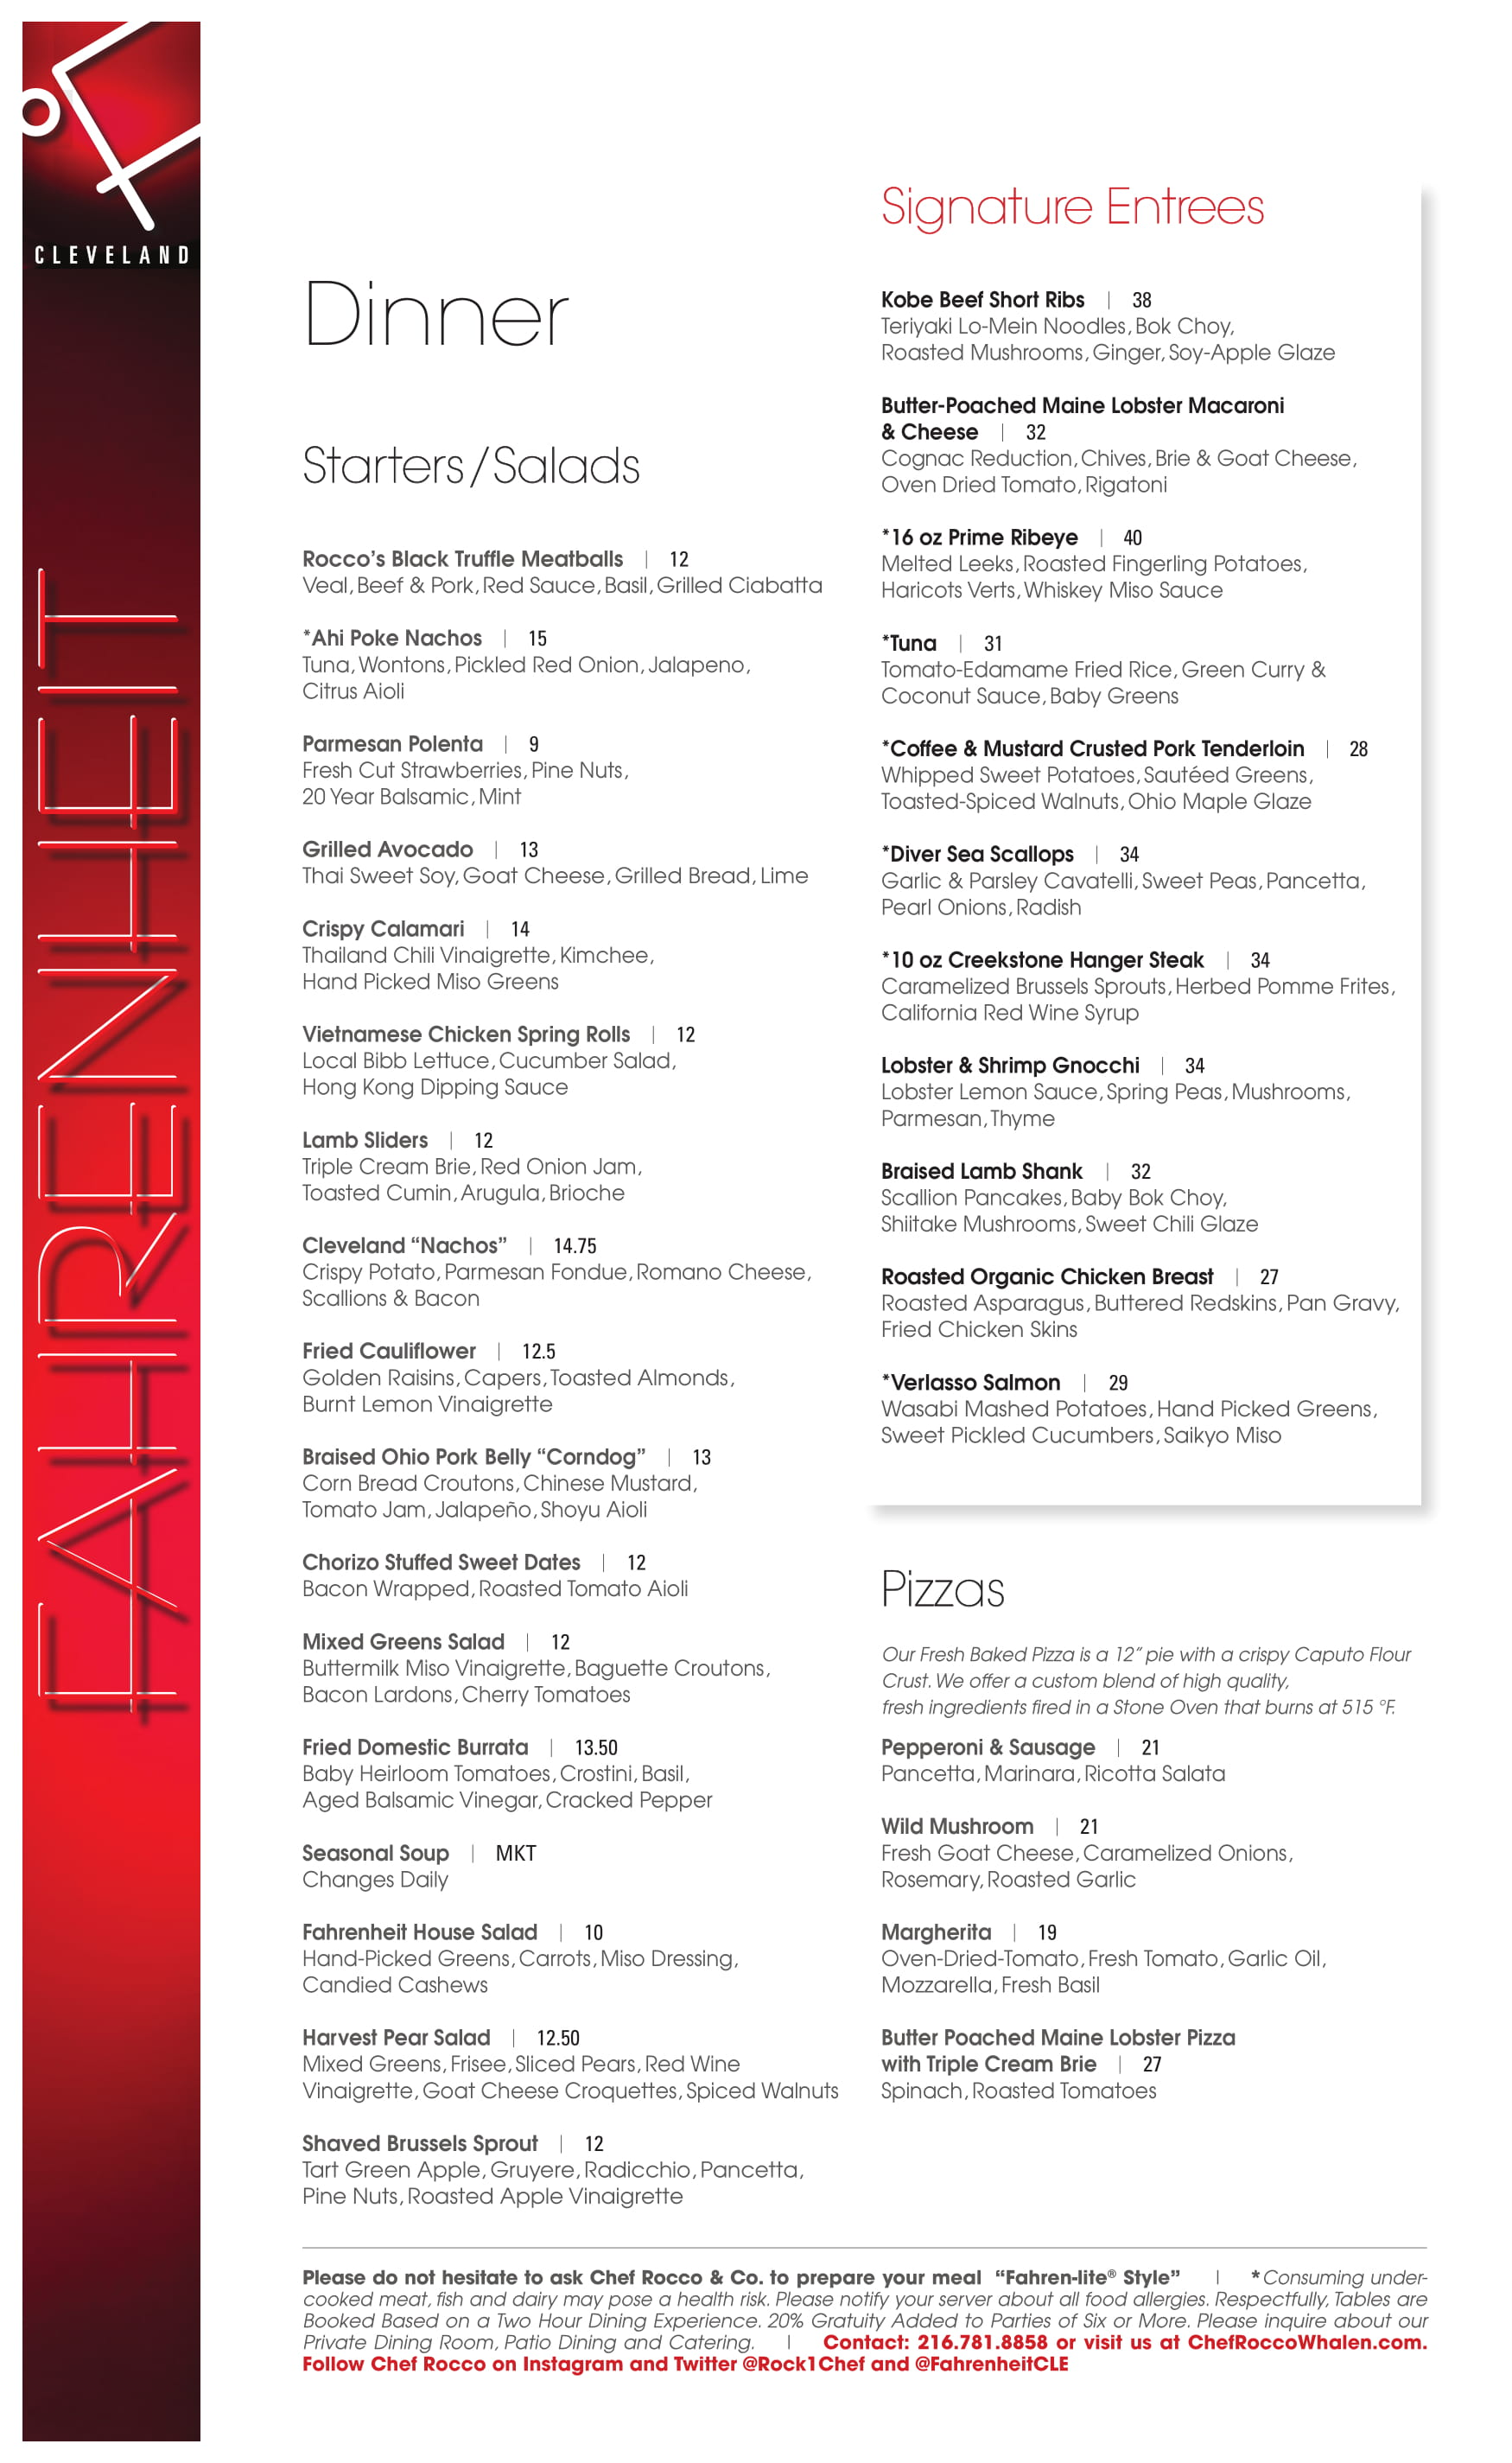 Dinner & Vegan Menu - Fahrenheit Restaurant Cleveland